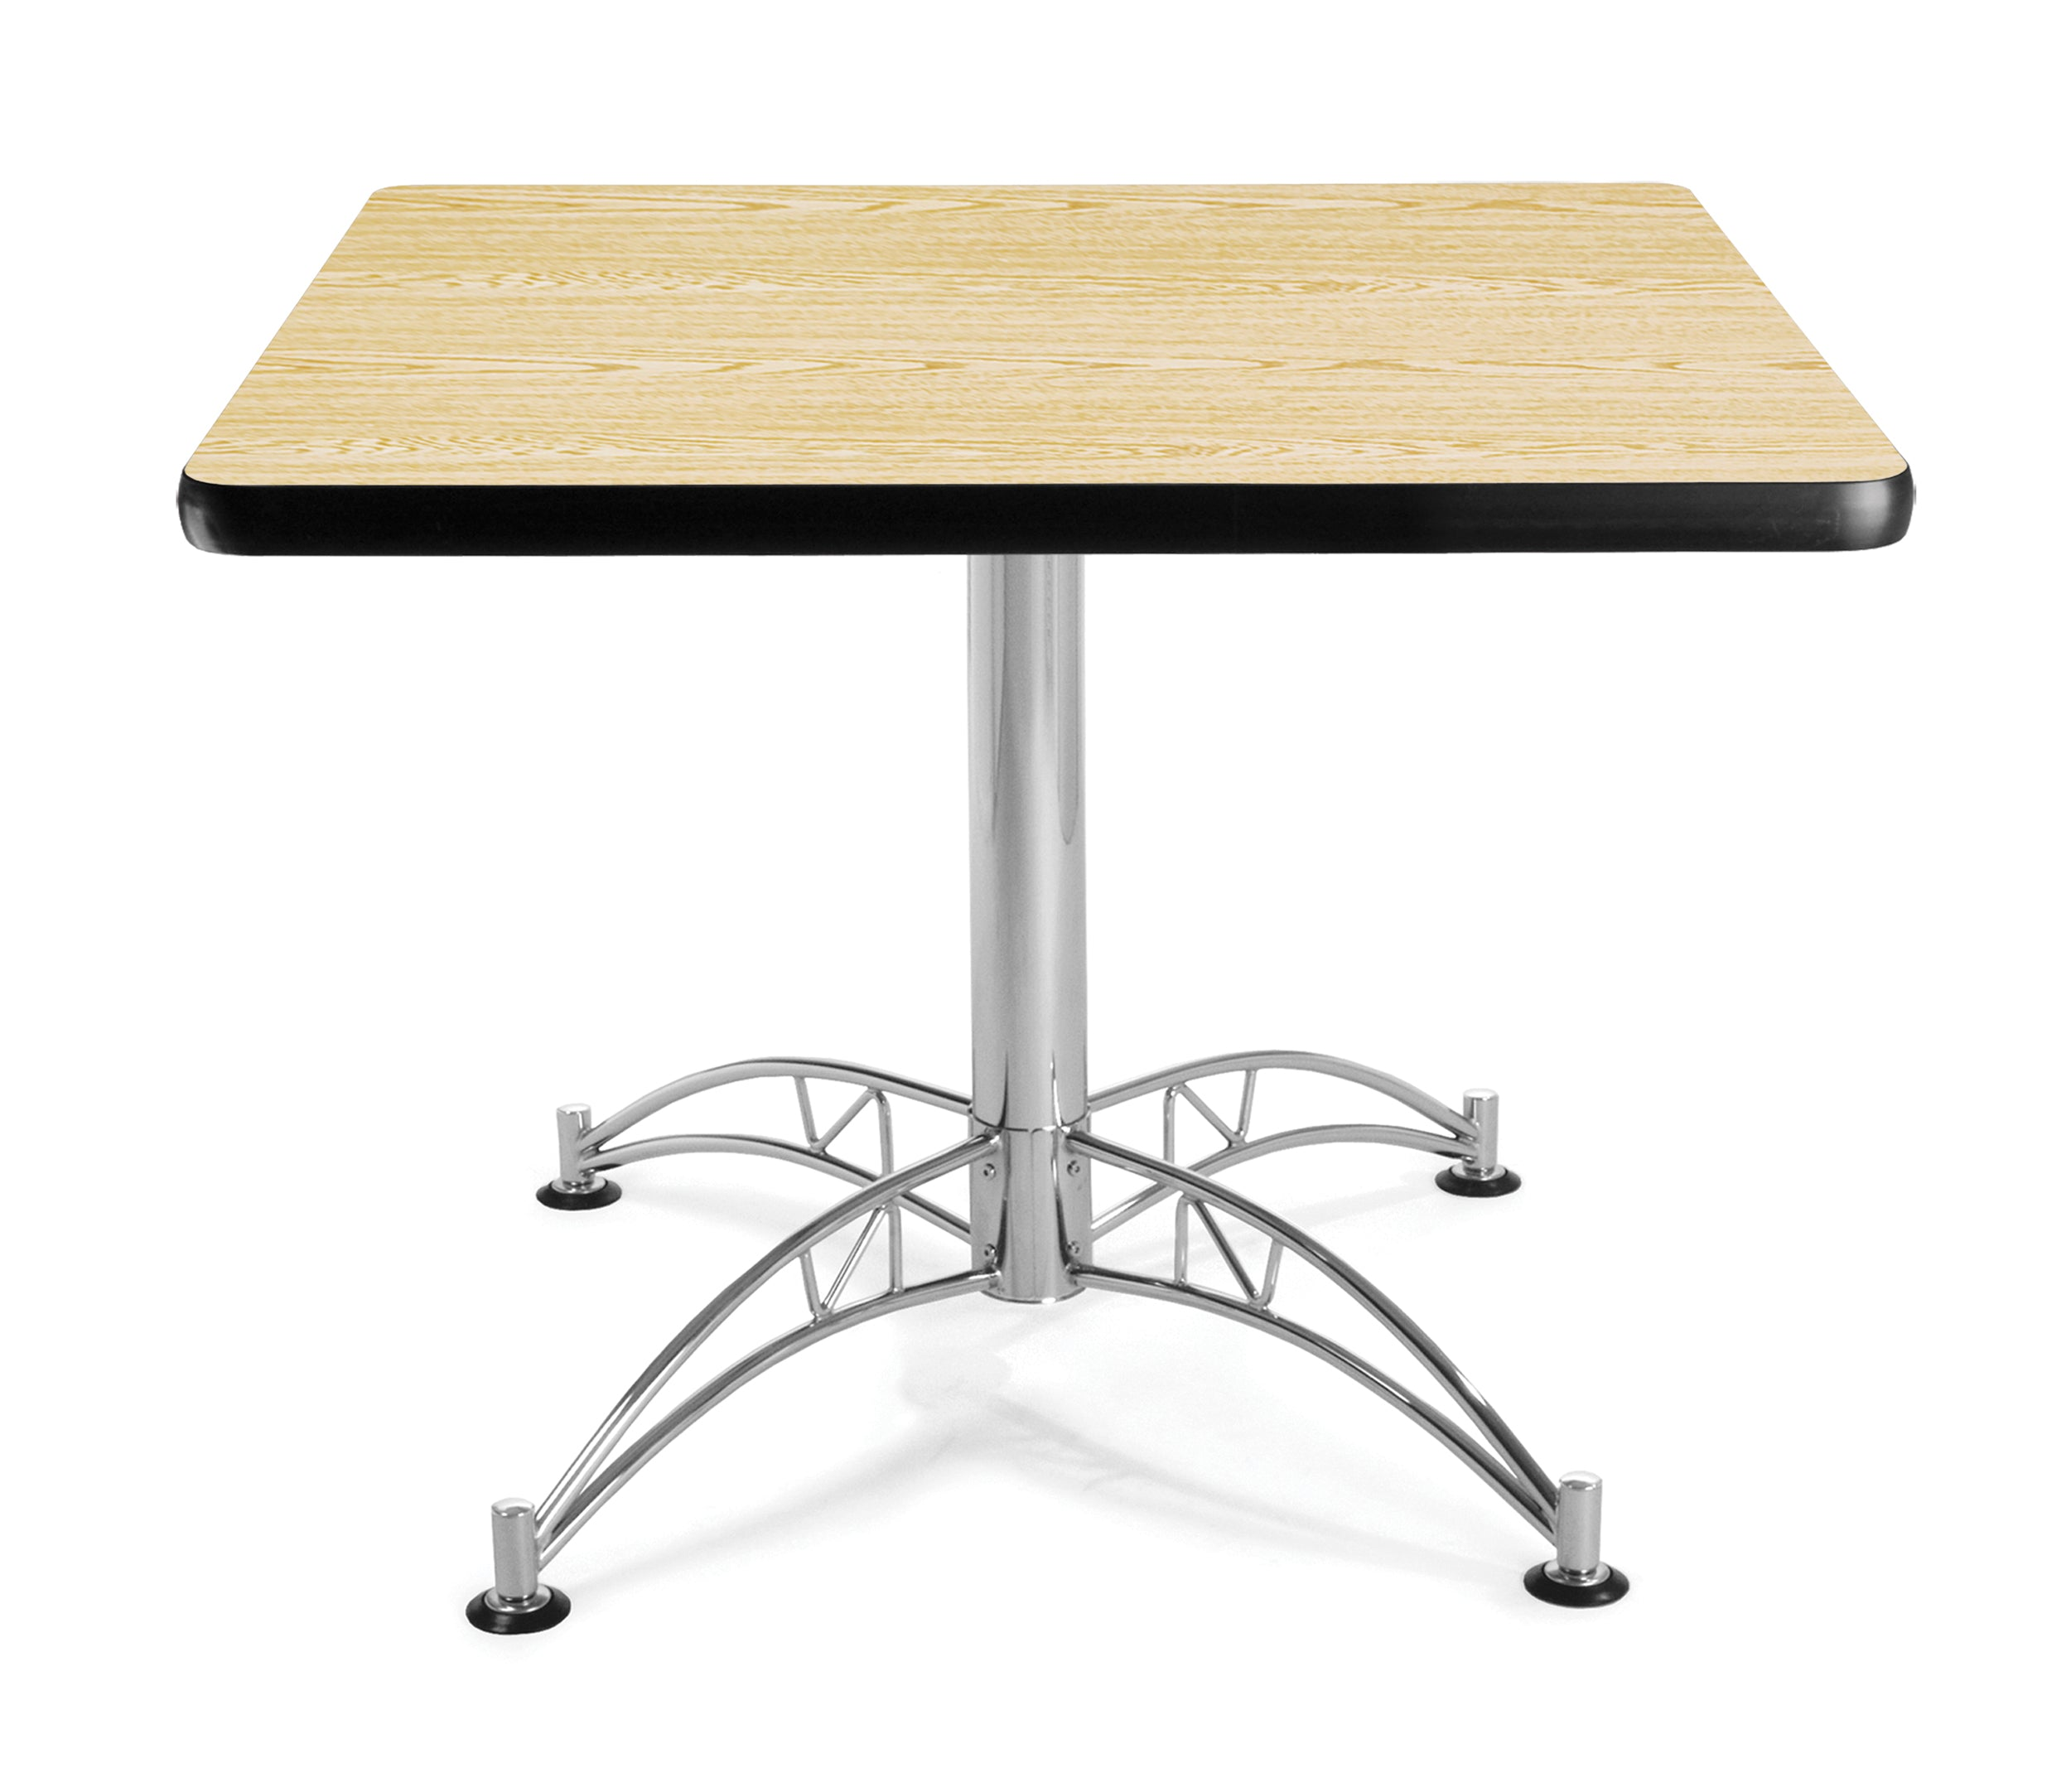 Ofminc Model LT36SQ 36 Inch Square Multi-Purpose Table